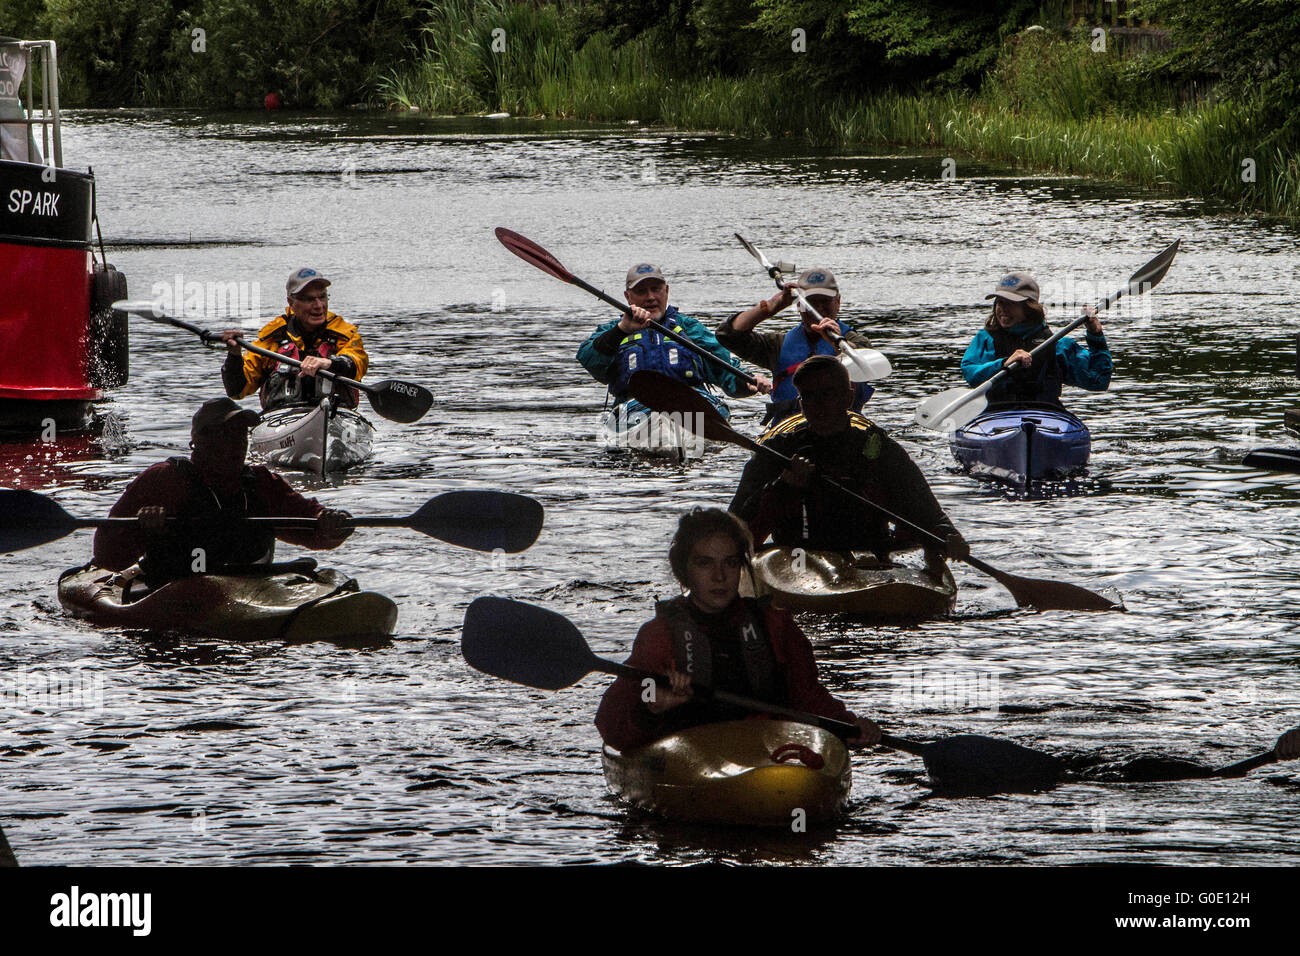 Canoe club on Forth and Clyde canal Scotland - Stock Image